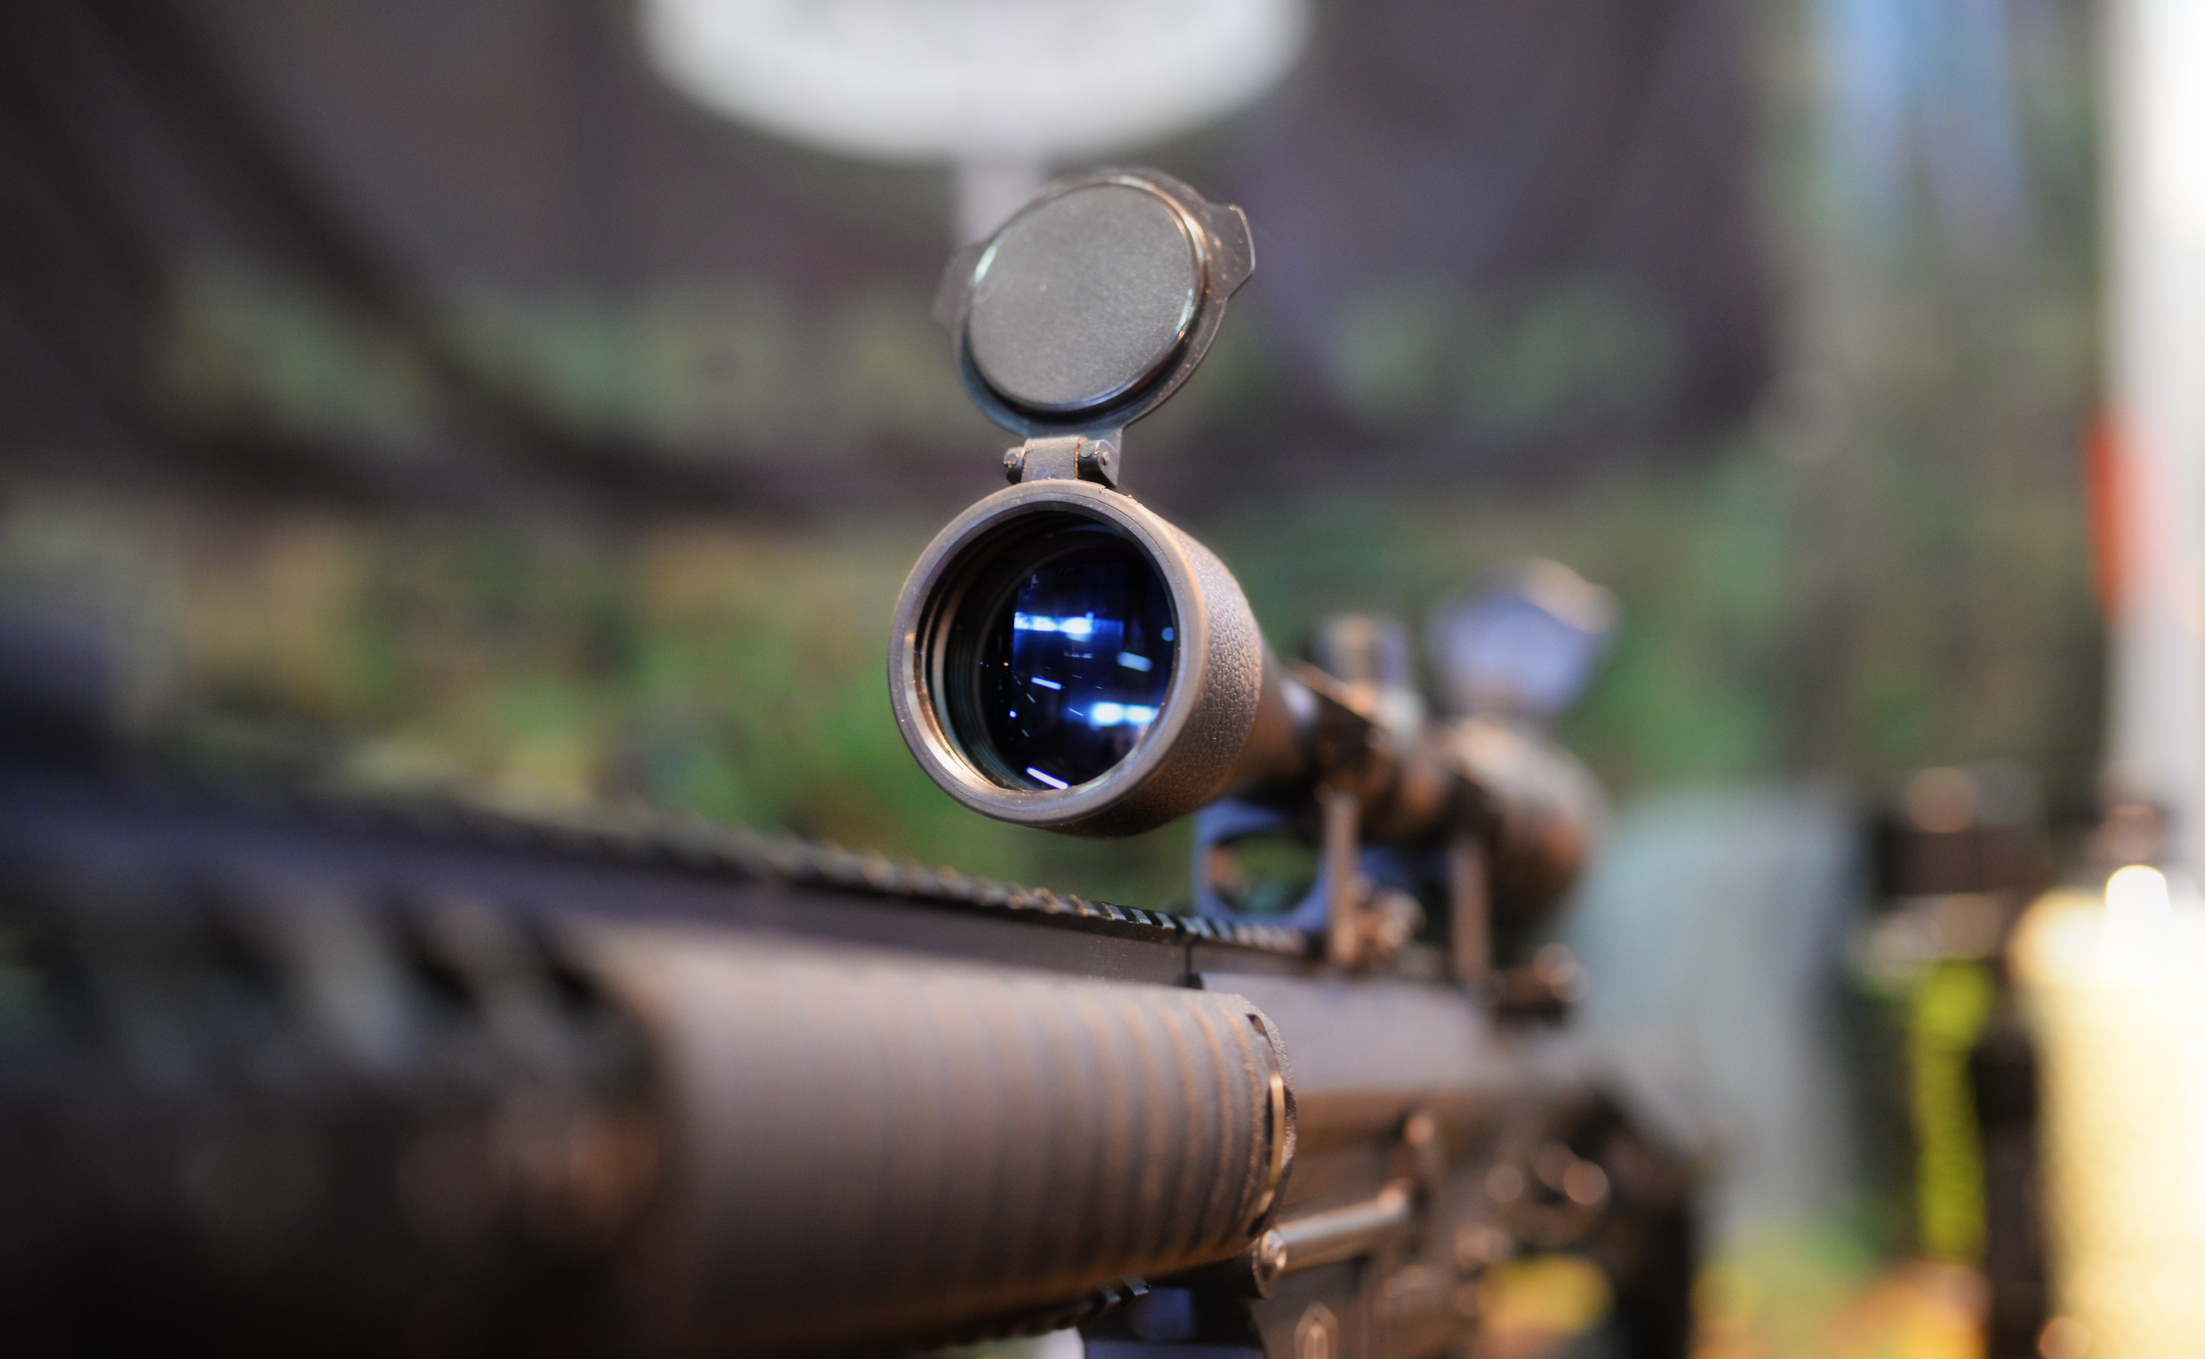 Guide to Rifle Optics & How to Choose the Best Rifle Scope